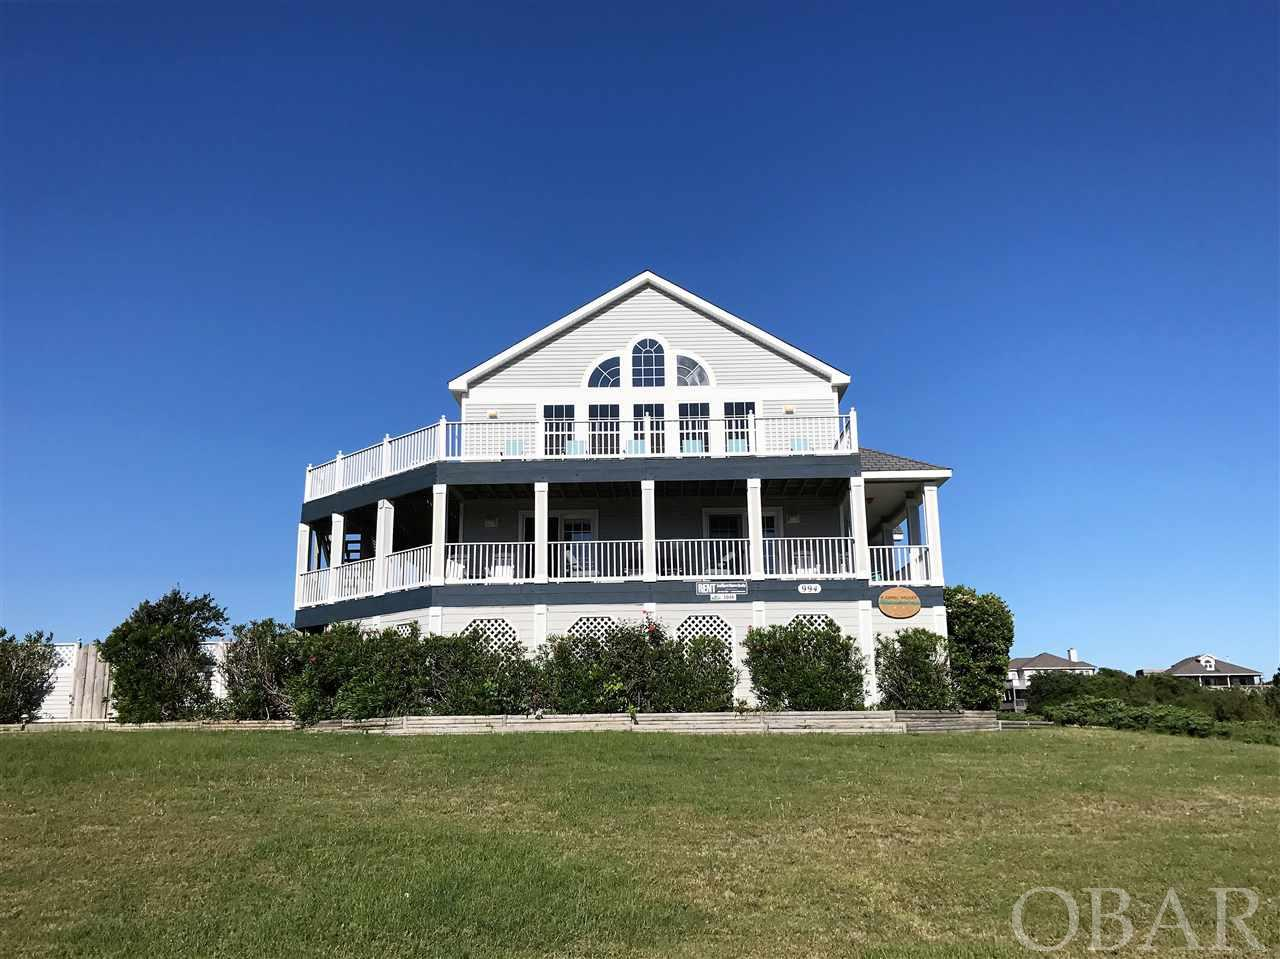 994 Whalehead Drive,Corolla,NC 27927,6 Bedrooms Bedrooms,5 BathroomsBathrooms,Residential,Whalehead Drive,98777